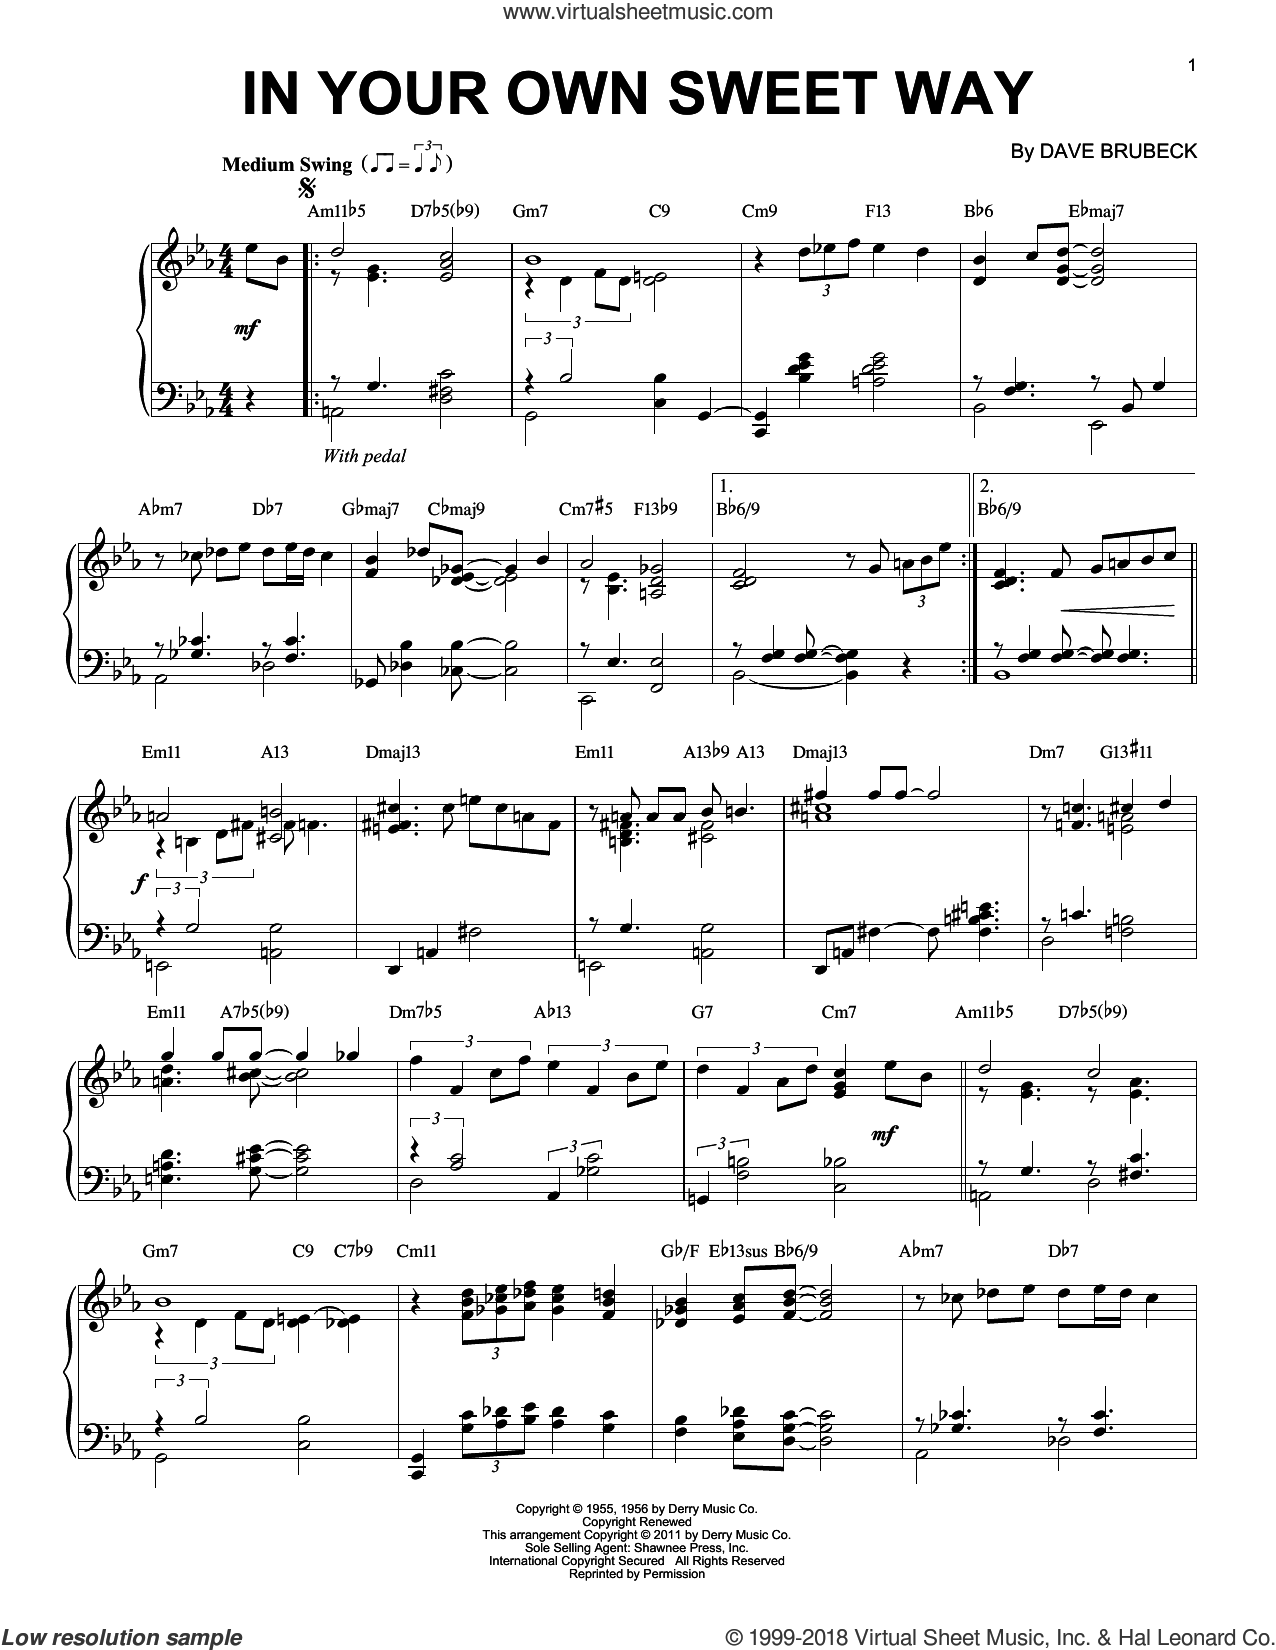 In Your Own Sweet Way (arr. Brent Edstrom) sheet music for piano solo by Dave Brubeck, intermediate skill level